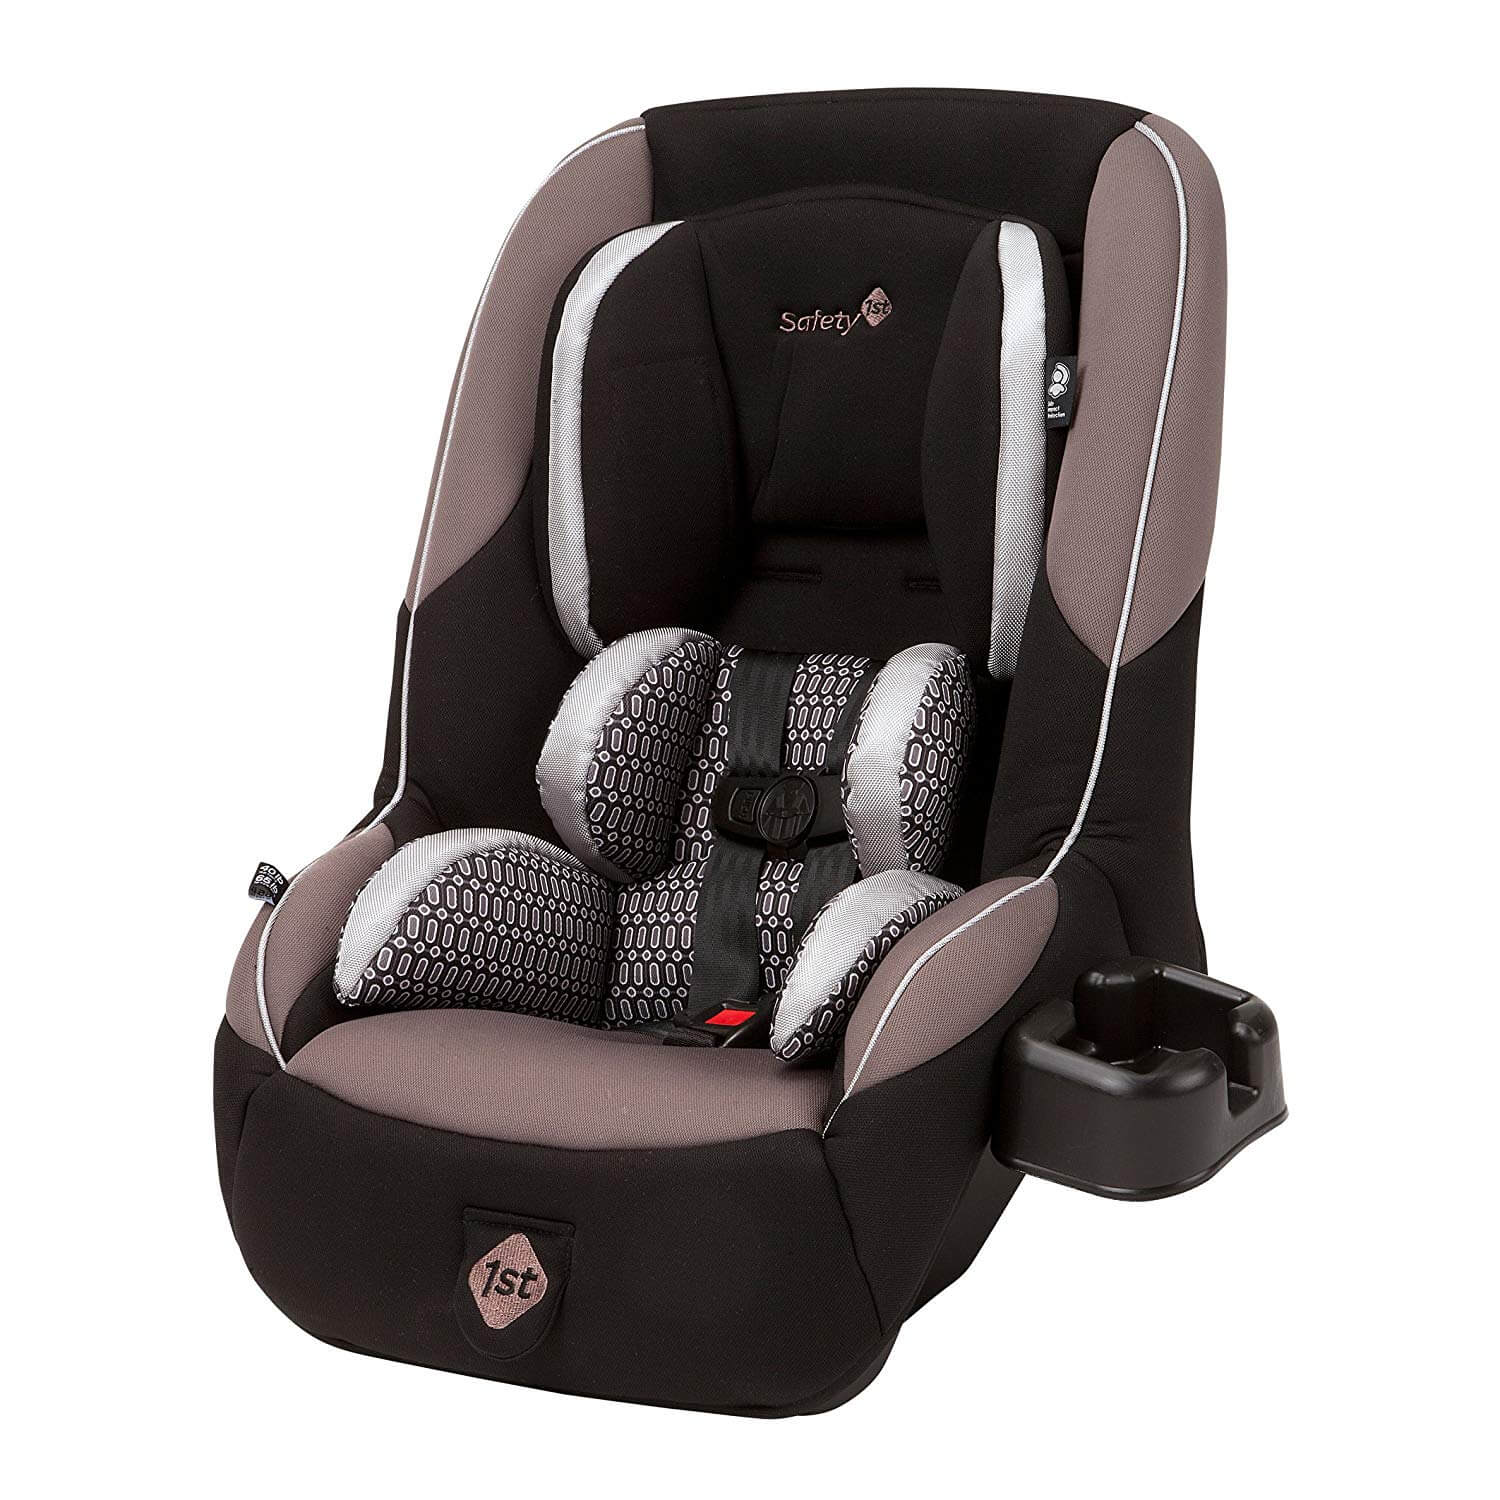 Safety 1st Guide 65 Convertible Car Seat Image